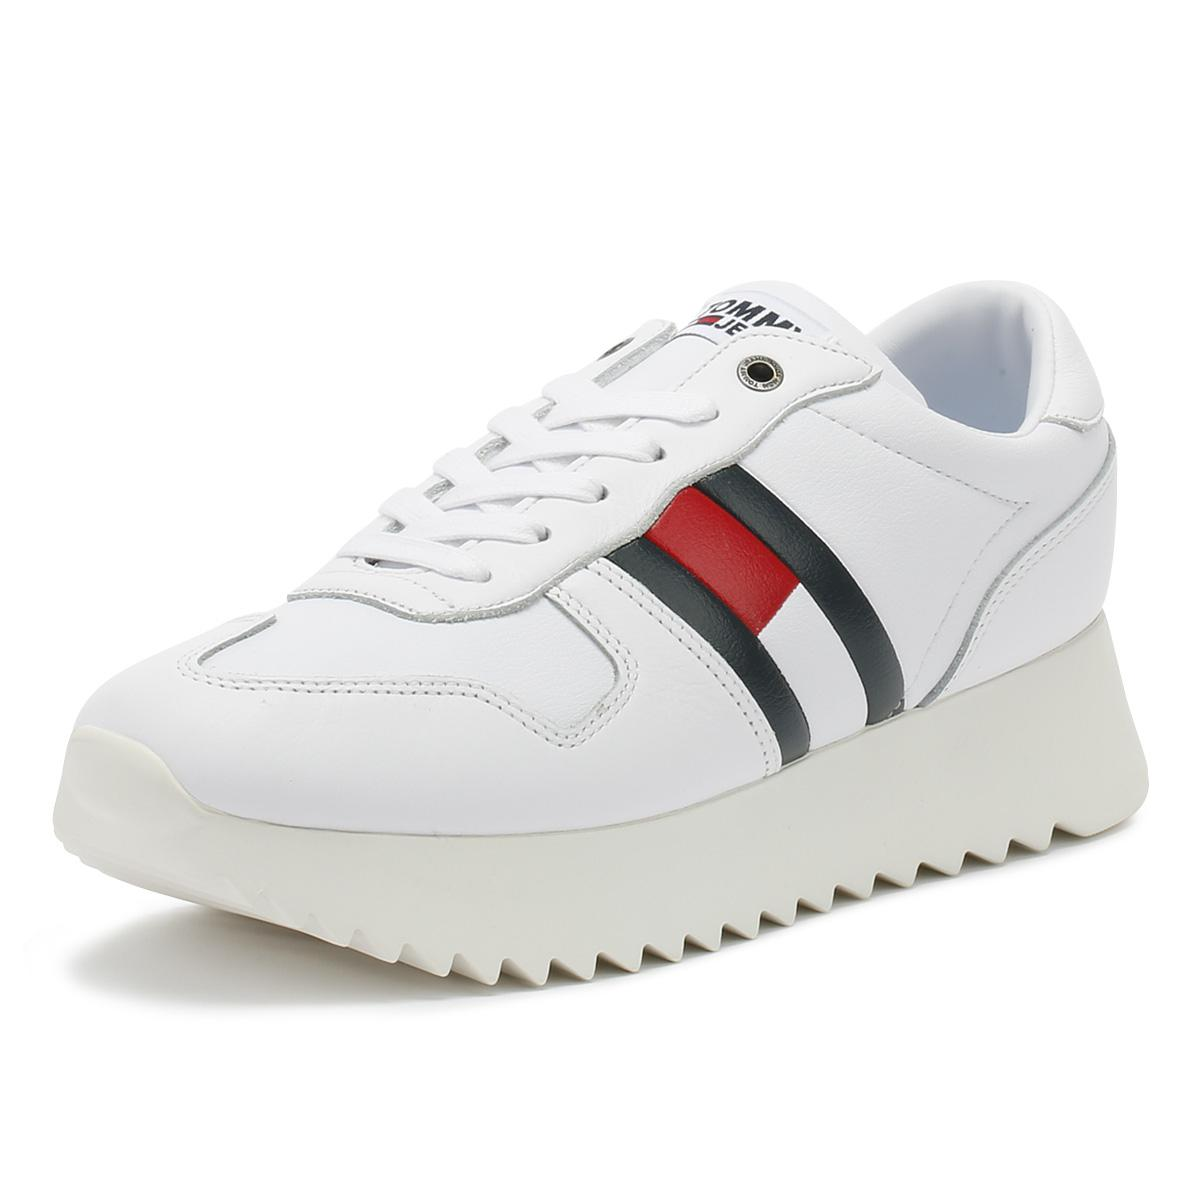 ea4686bd Tommy Hilfiger Womens White High Cleated Trainers in White - Lyst